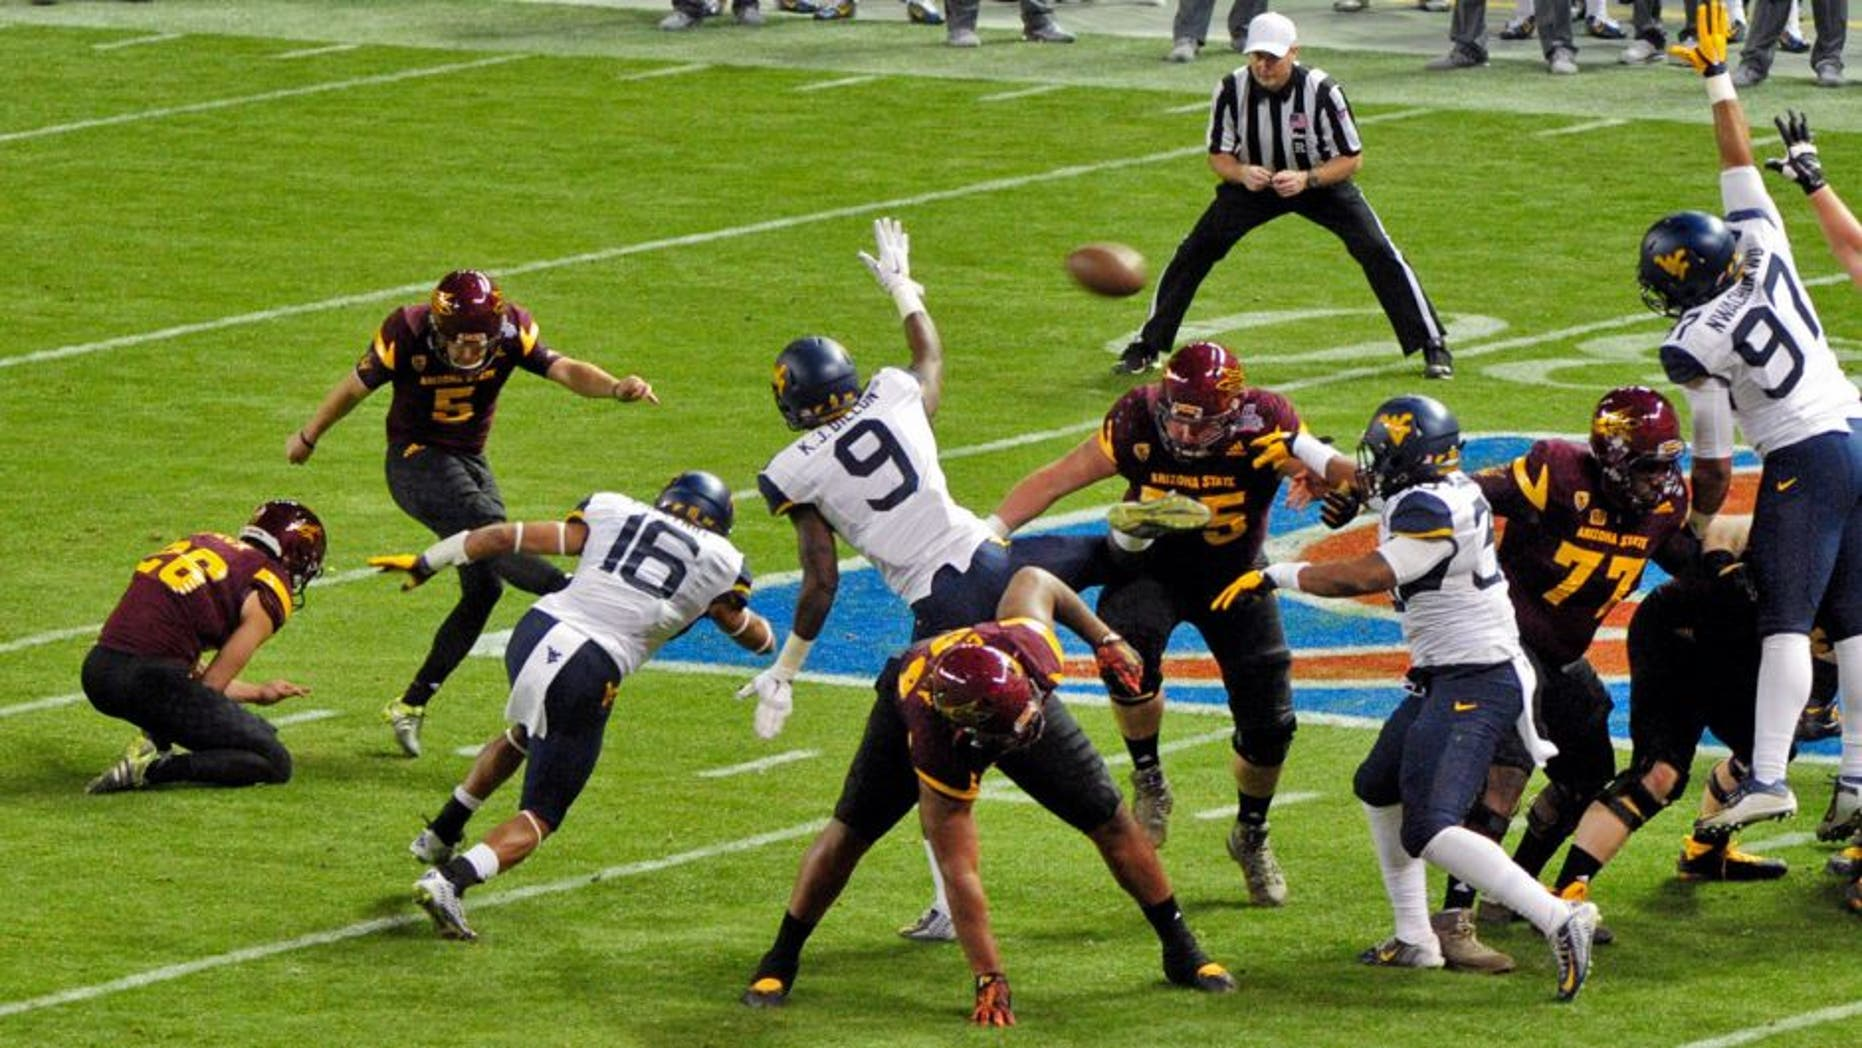 Jan 2, 2016; Phoenix, AZ, USA; Arizona State Sun Devils place kicker Zane Gonzalez (5) kicks a field goal during the first half against the West Virginia Mountaineers at Chase Field during the Cactus Bowl. Mandatory Credit: Matt Kartozian-USA TODAY Sports